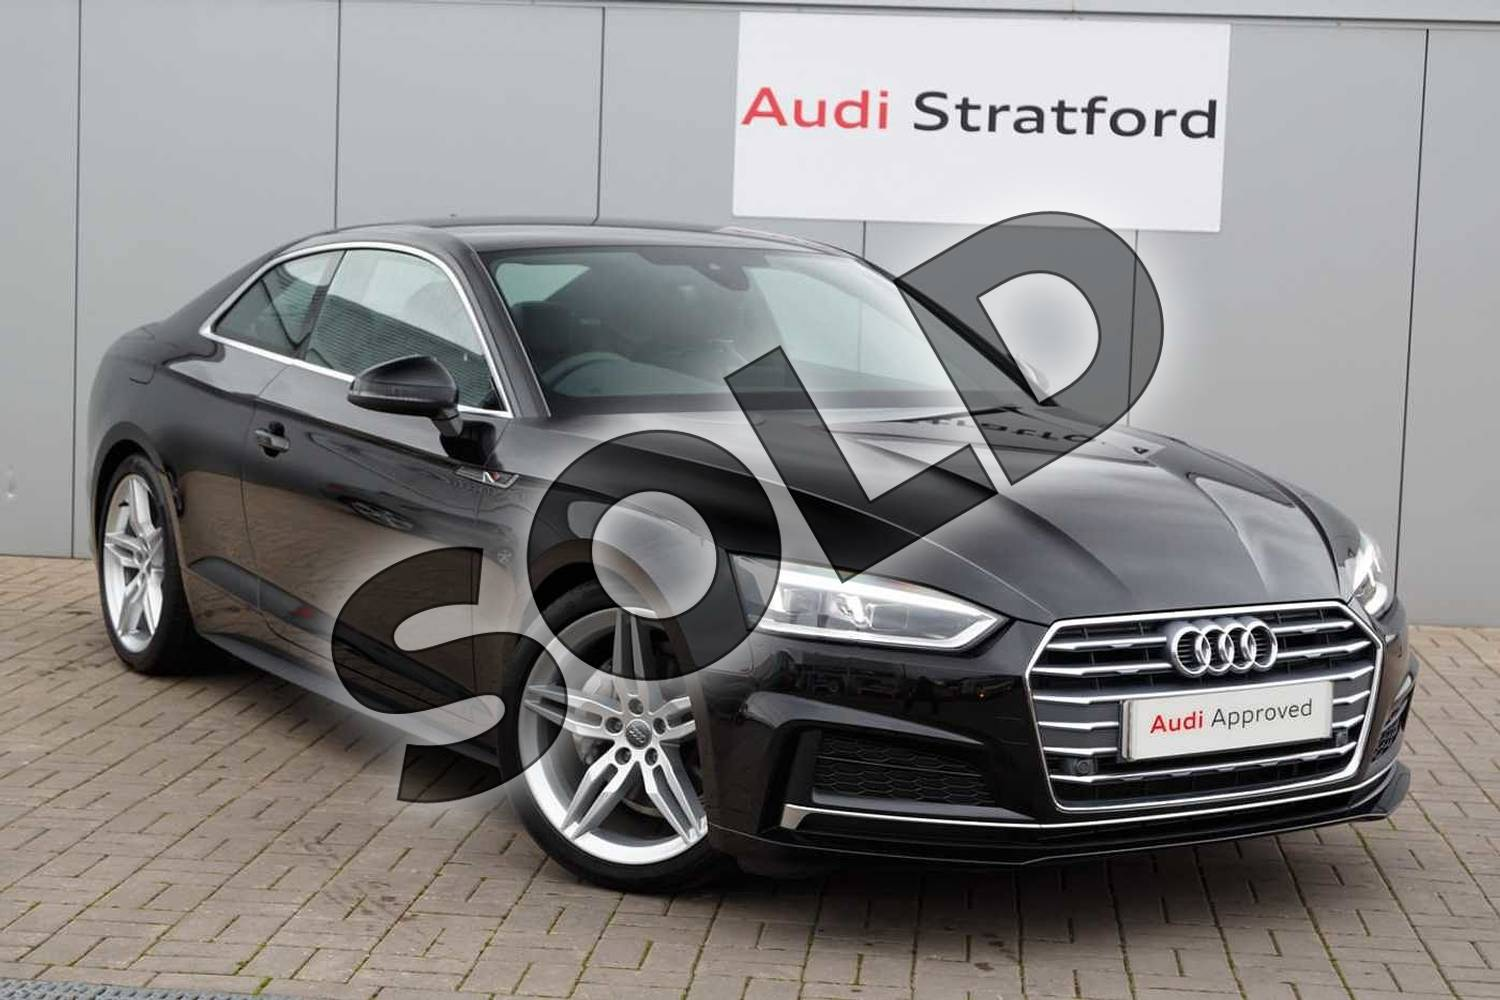 2019 Audi A5 Diesel Coupe 40 TDI S Line 2dr S Tronic in Brilliant Black at Stratford Audi